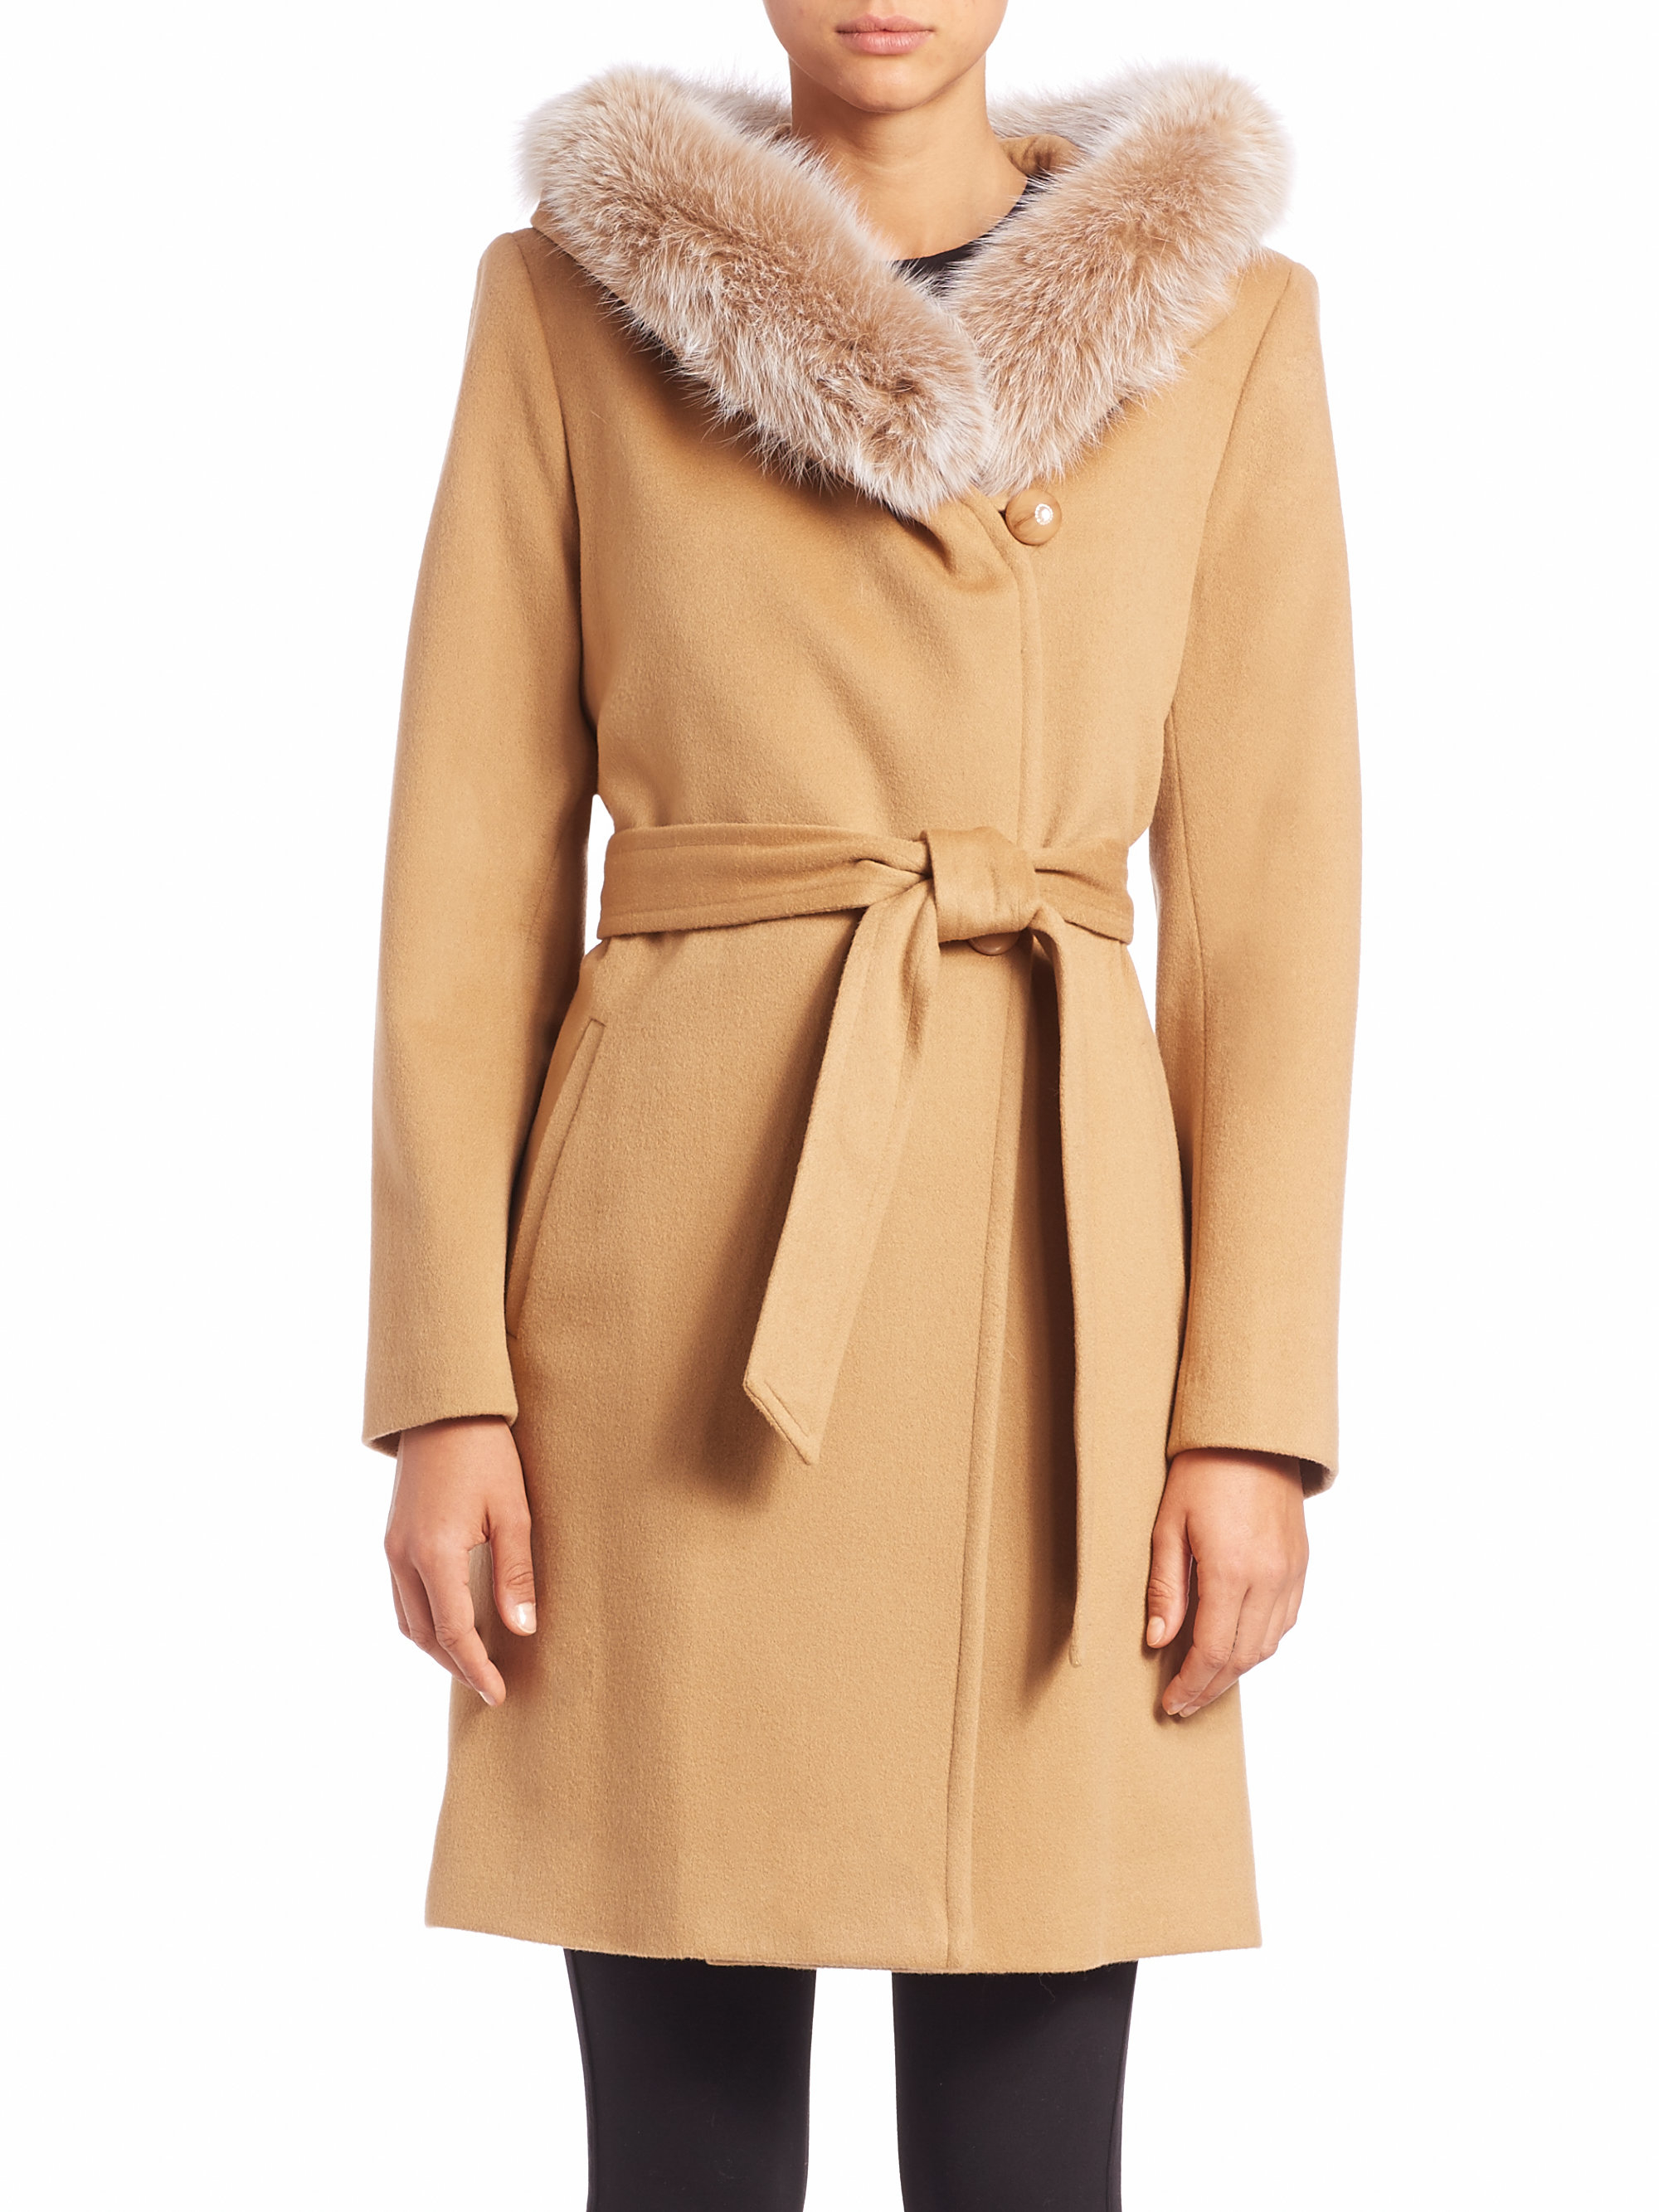 Sofia cashmere Wool &amp Cashmere Fur-trimmed Hooded Short Wrap Coat